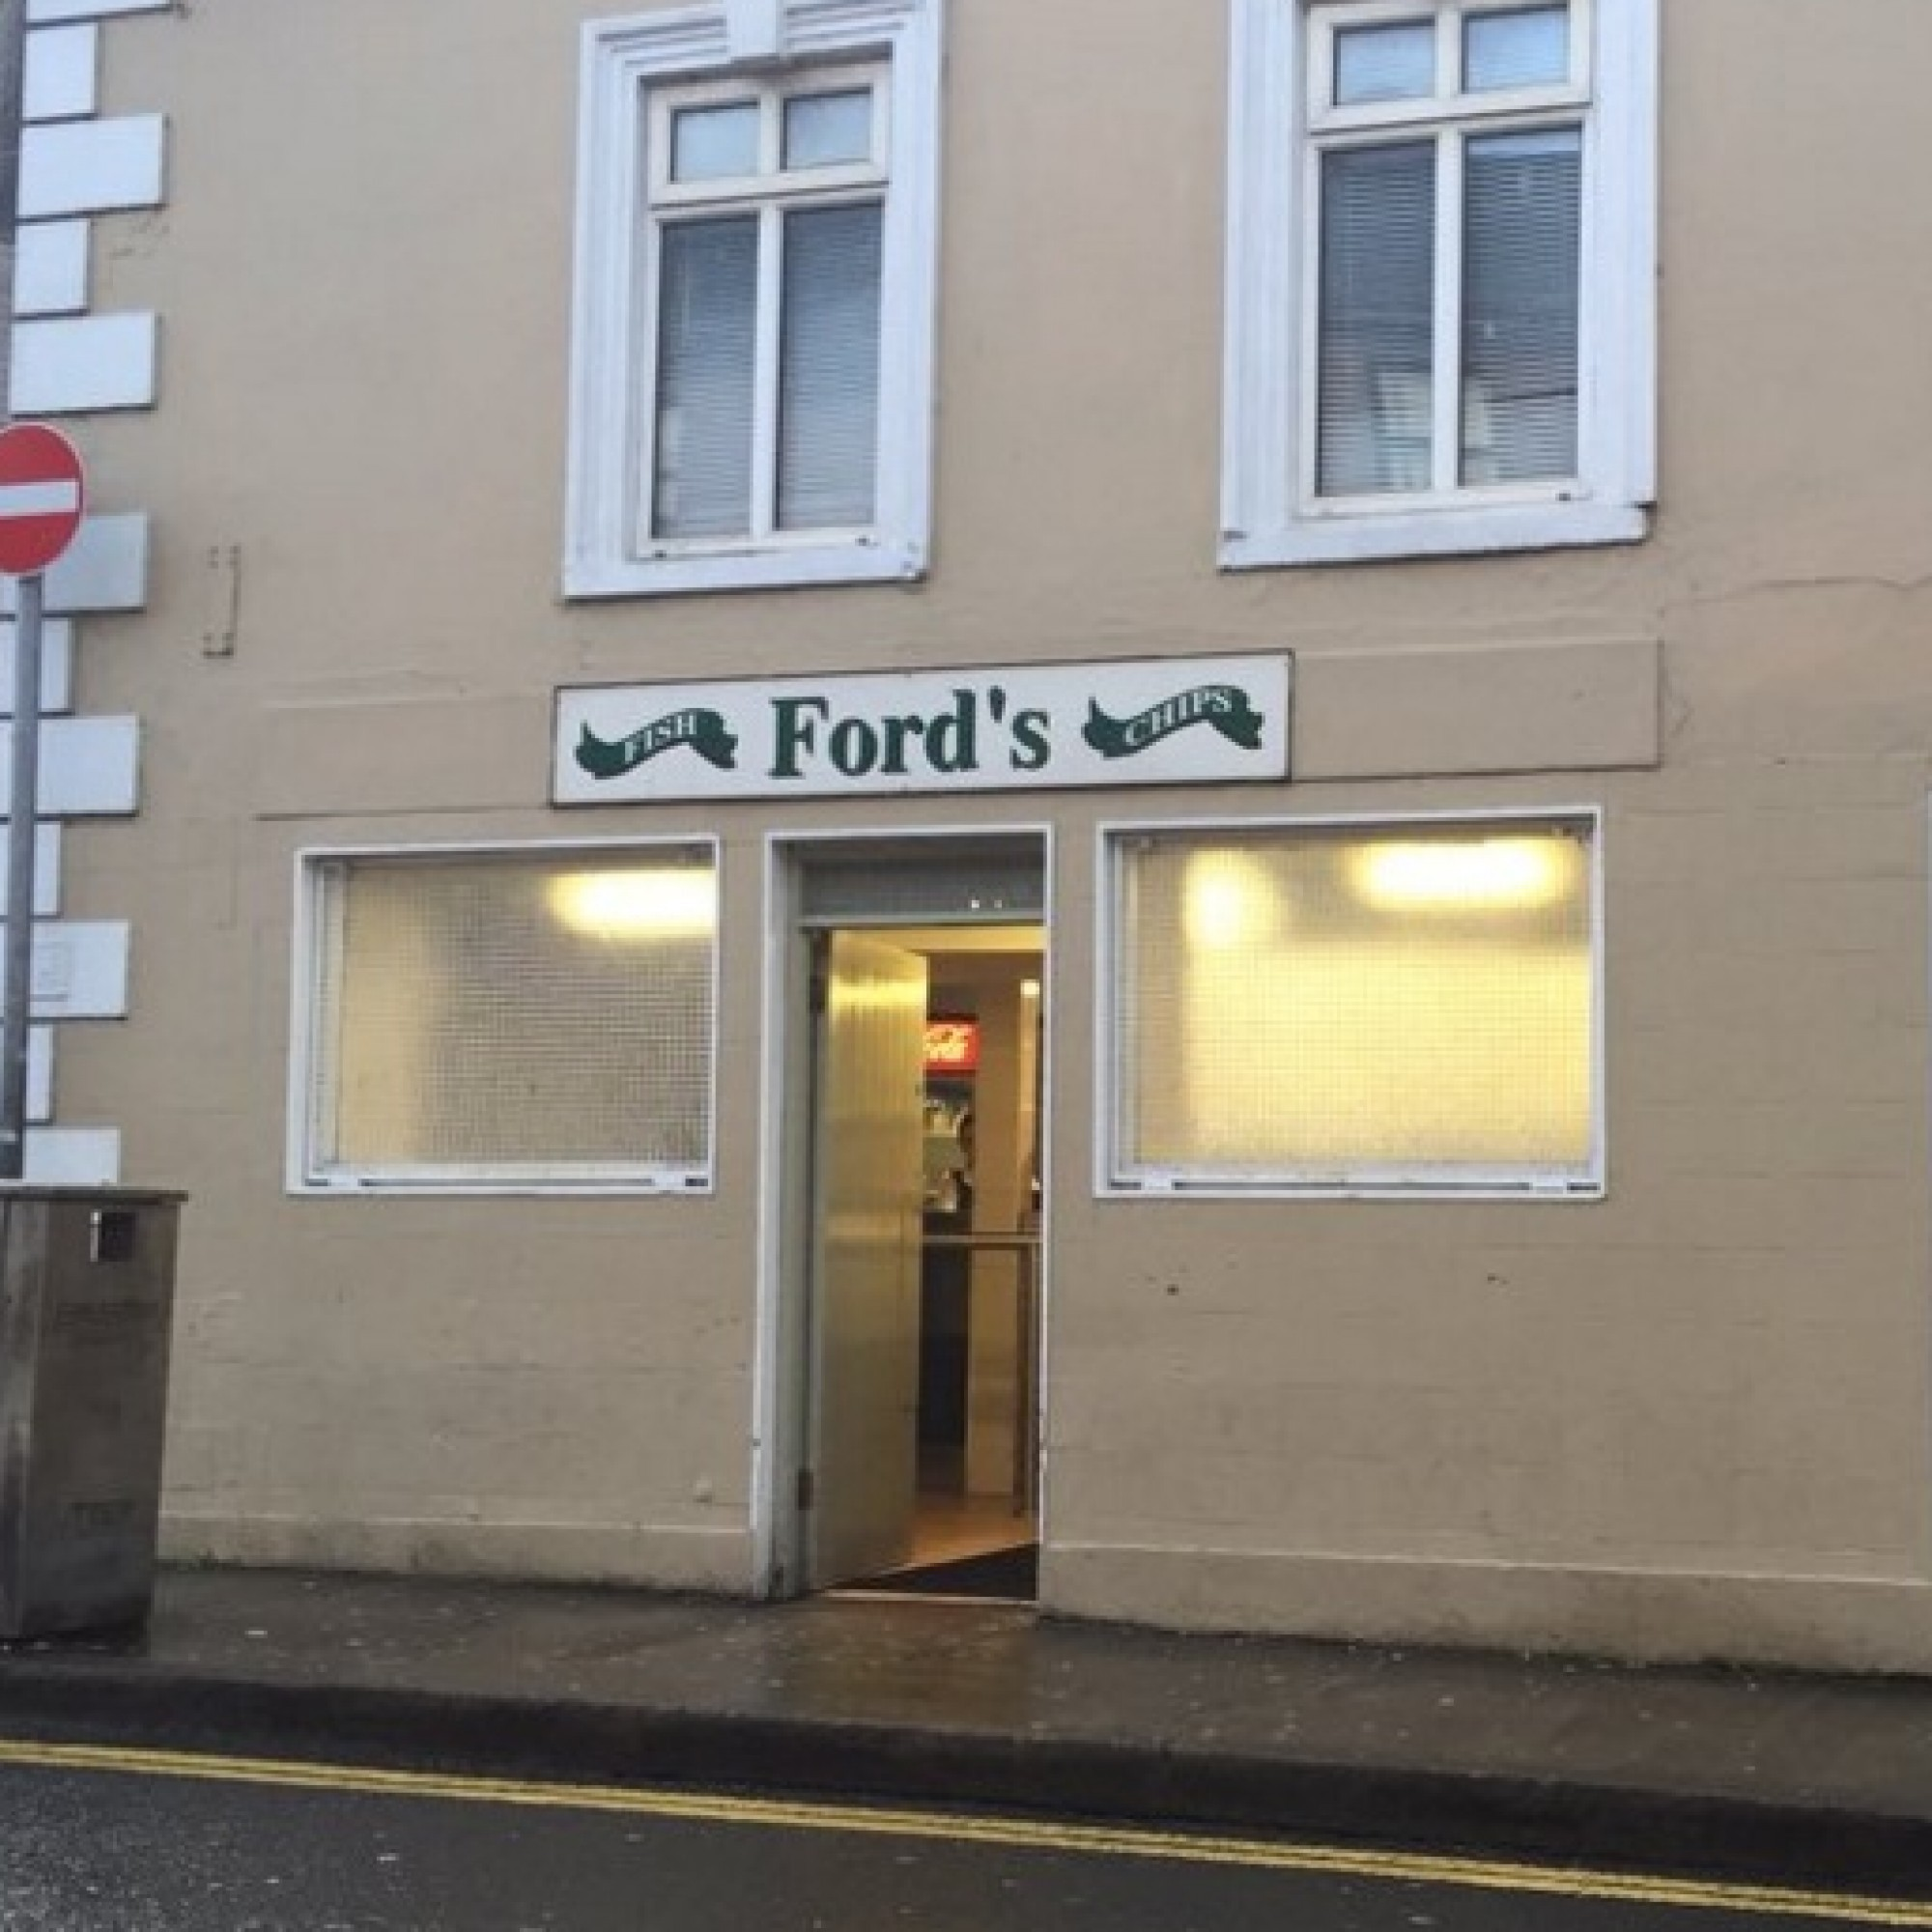 Here's why Donkey Ford's is the jewel in Limerick's chipper crown